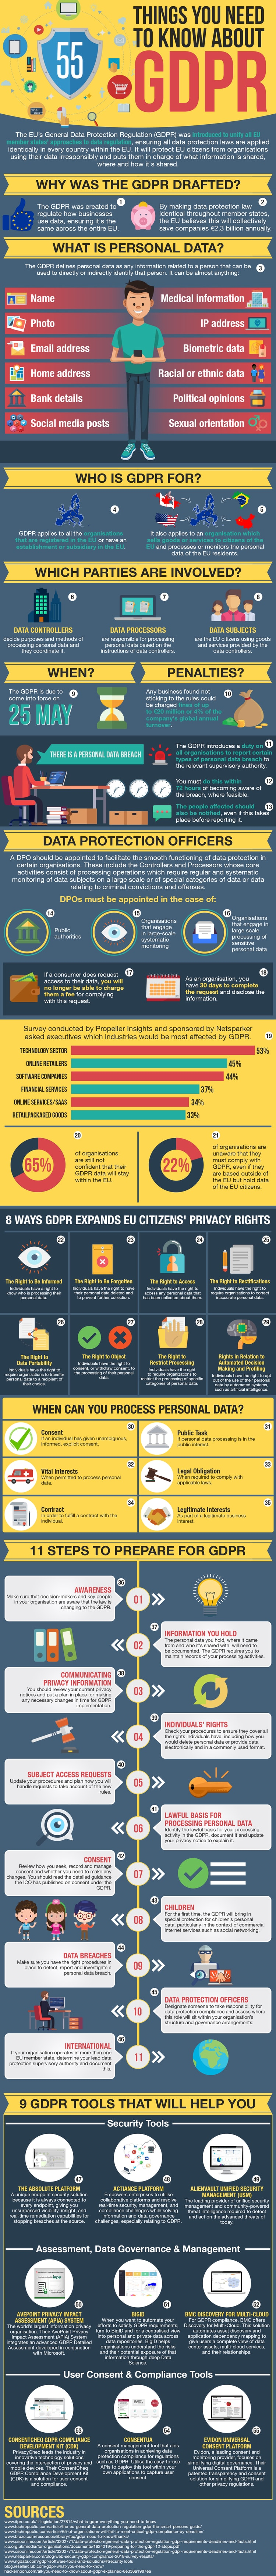 Everything about GDPR